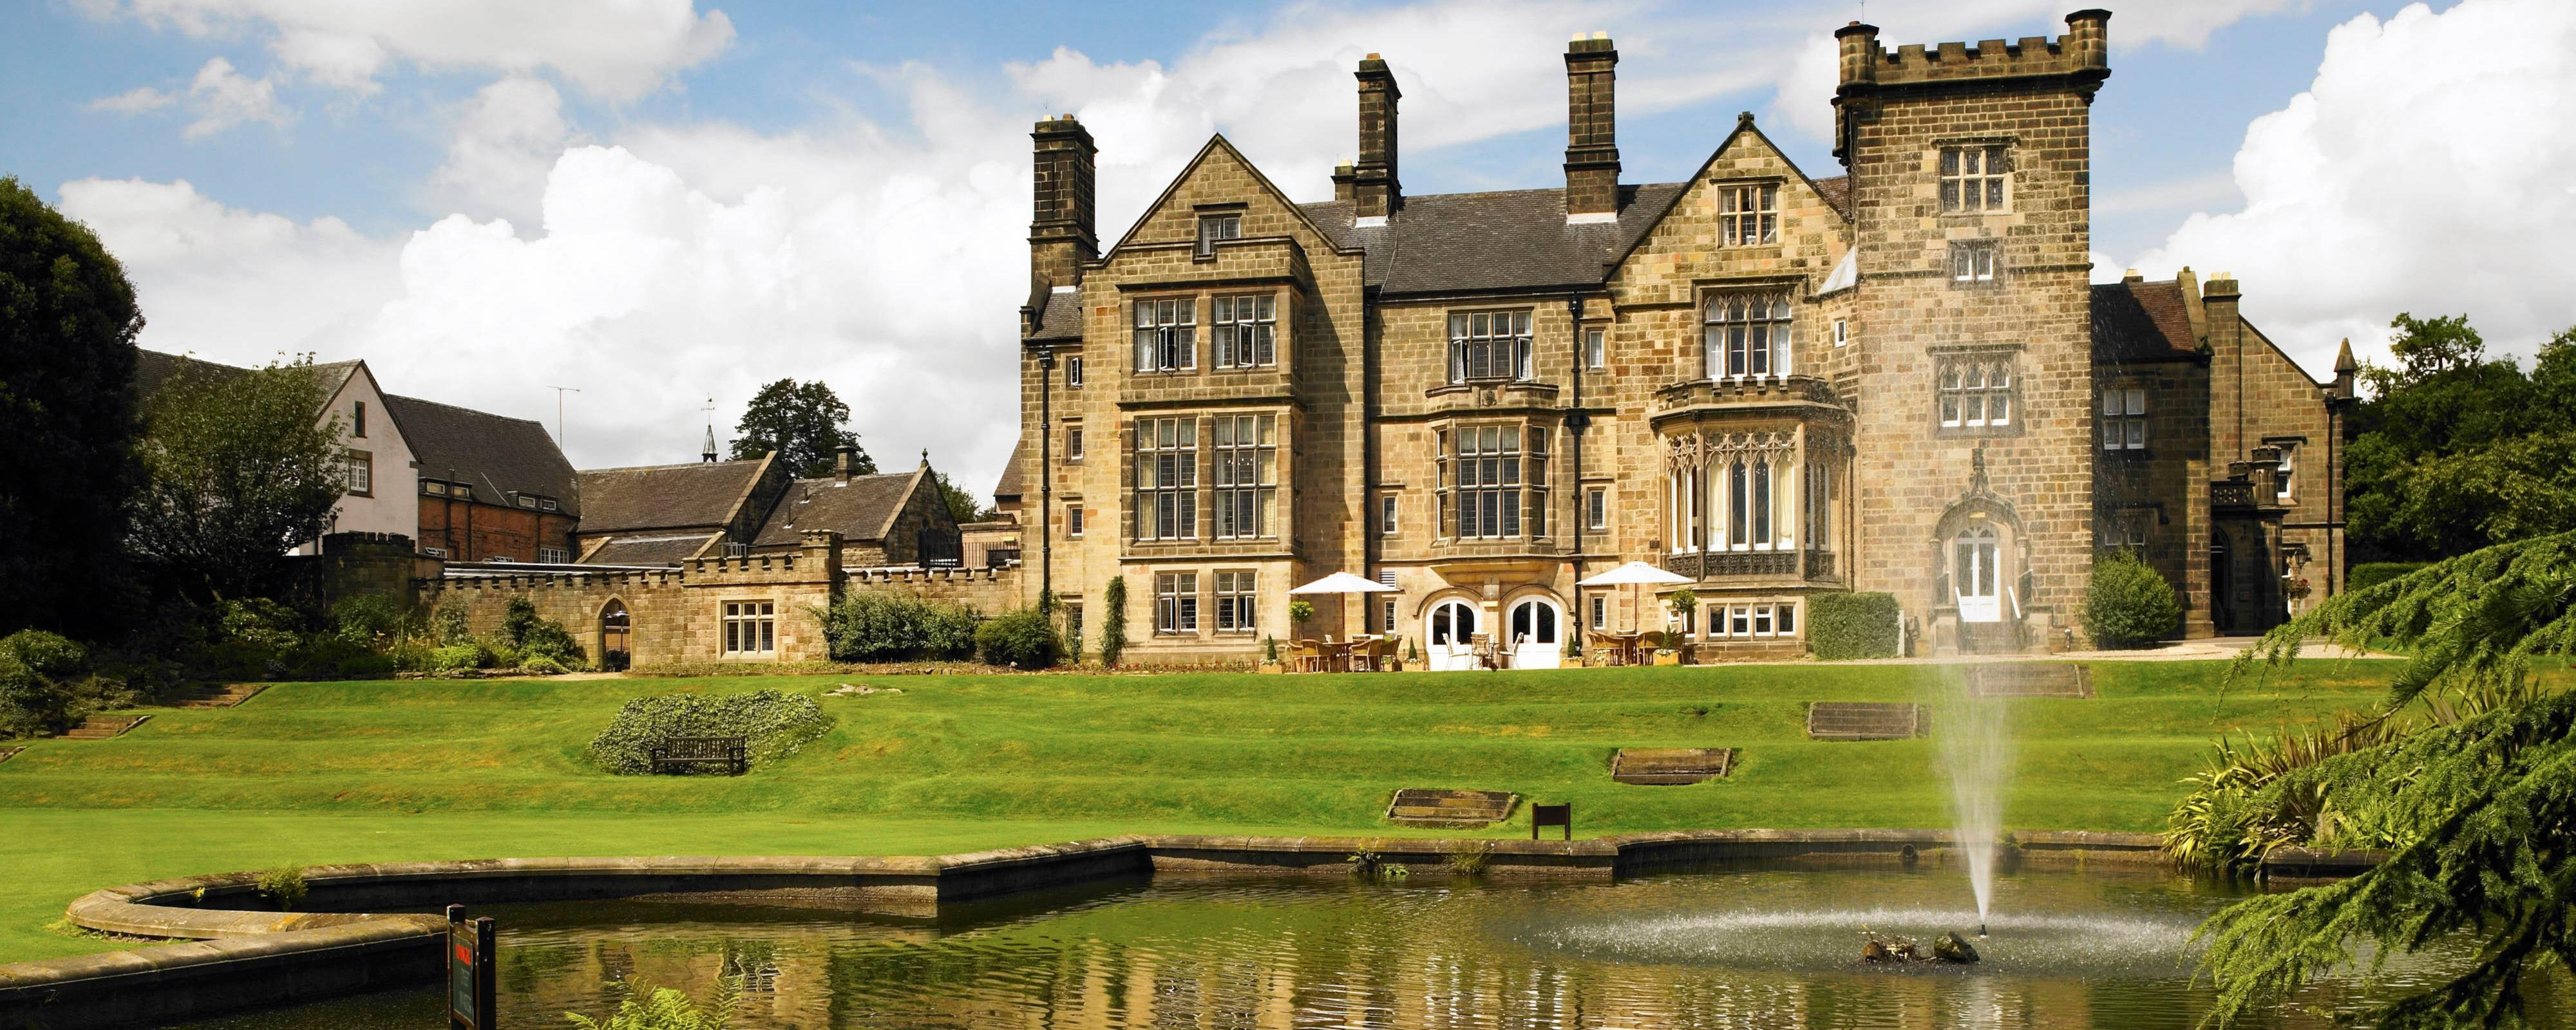 Breadsall Priory Marriott Hotel et Country Club